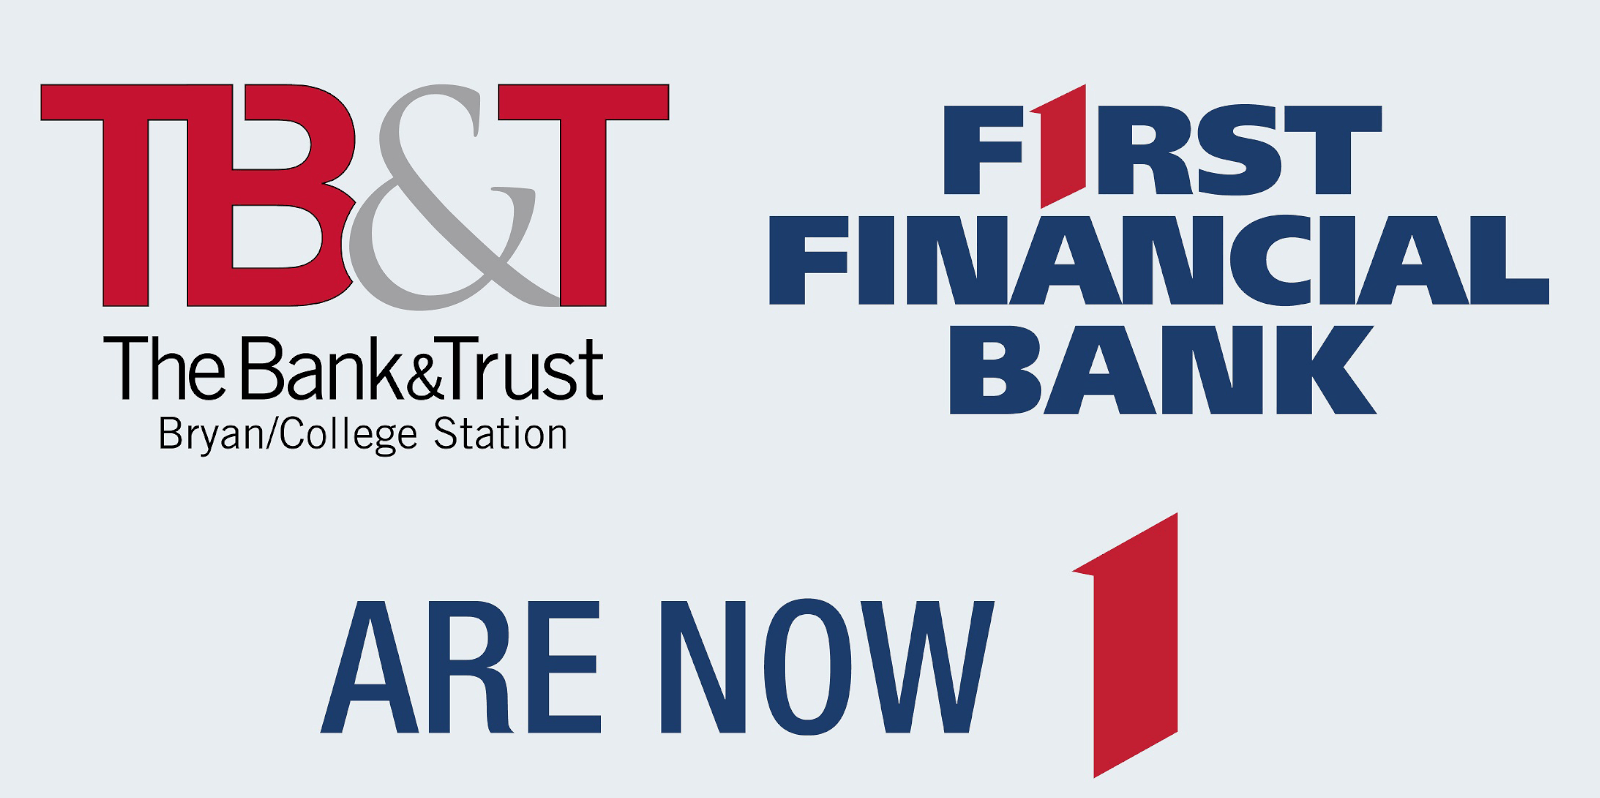 Photo for First Financial Bankshares, Inc. Completes Acquisition of TB&T Bancshares, Inc., Bryan, Texas